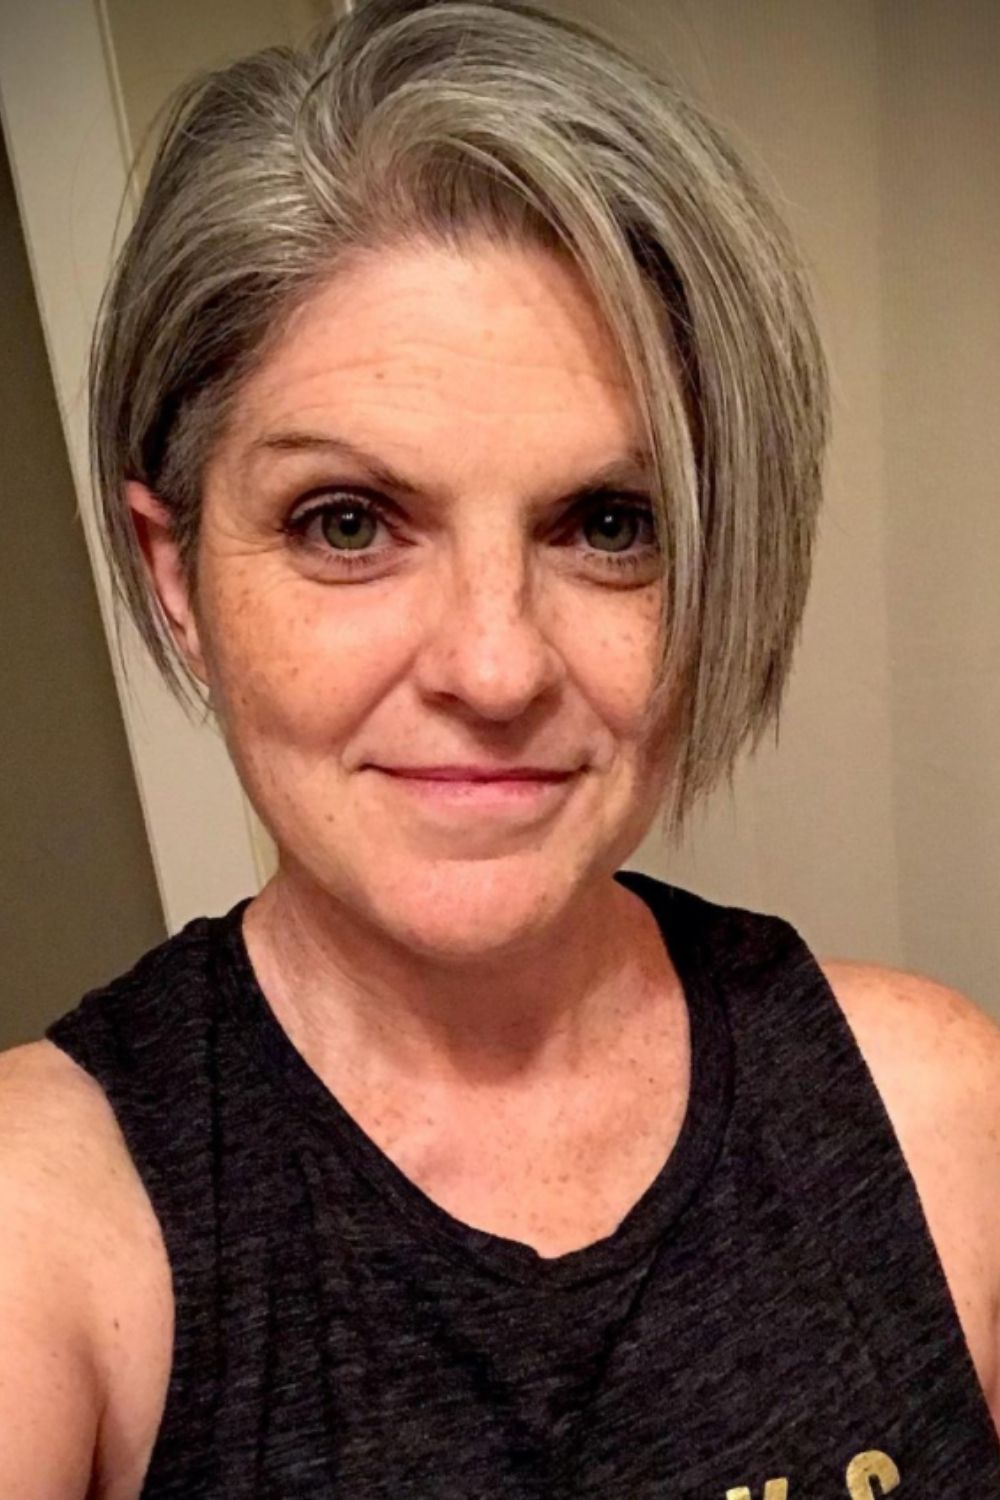 Short Hairstyle: The Top 40 Haircut And For Women Over 60!